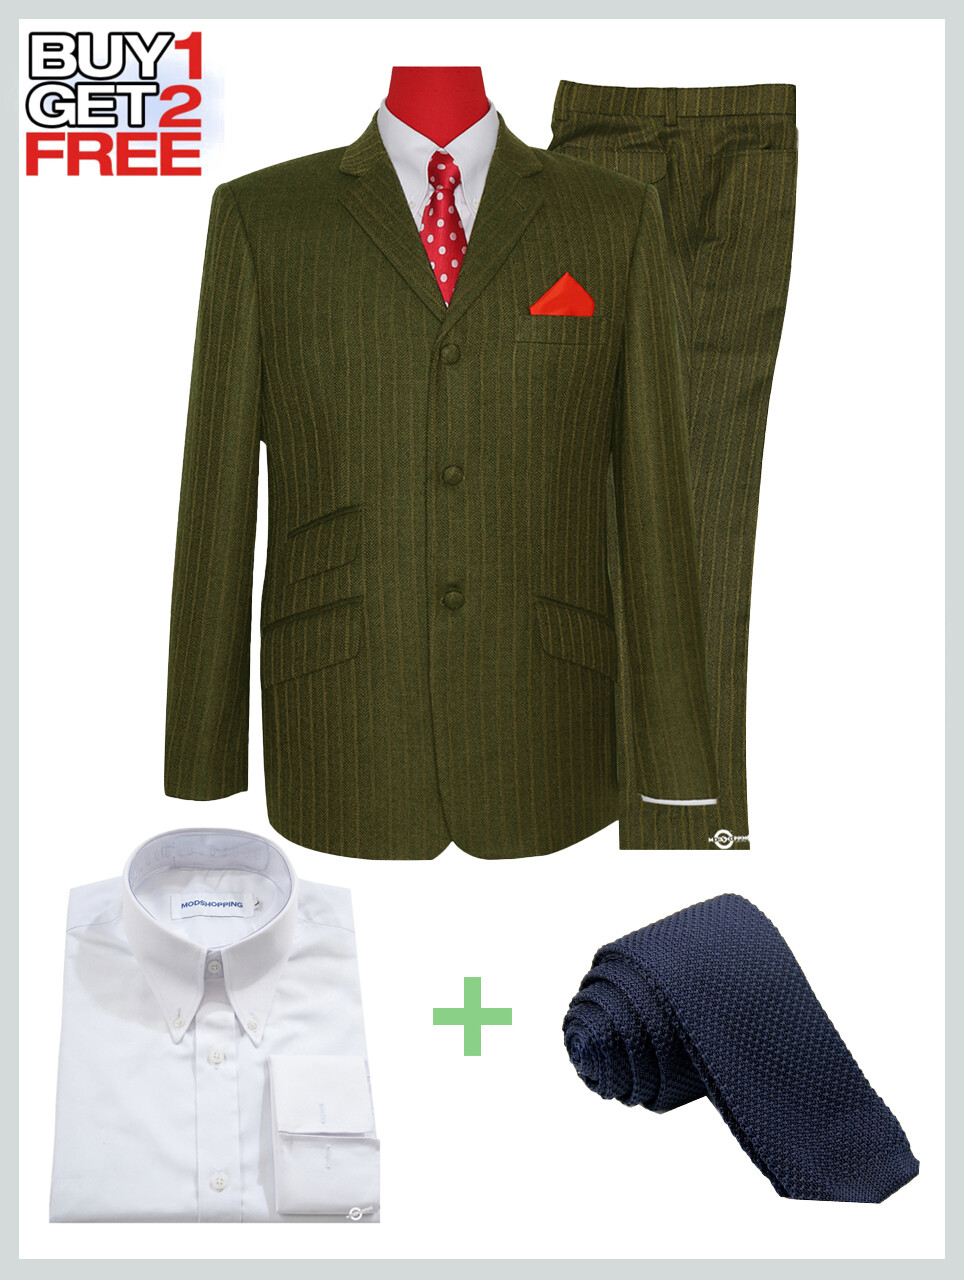 2 Piece Suit Package | Tobacco Herring Bone Suit For Man